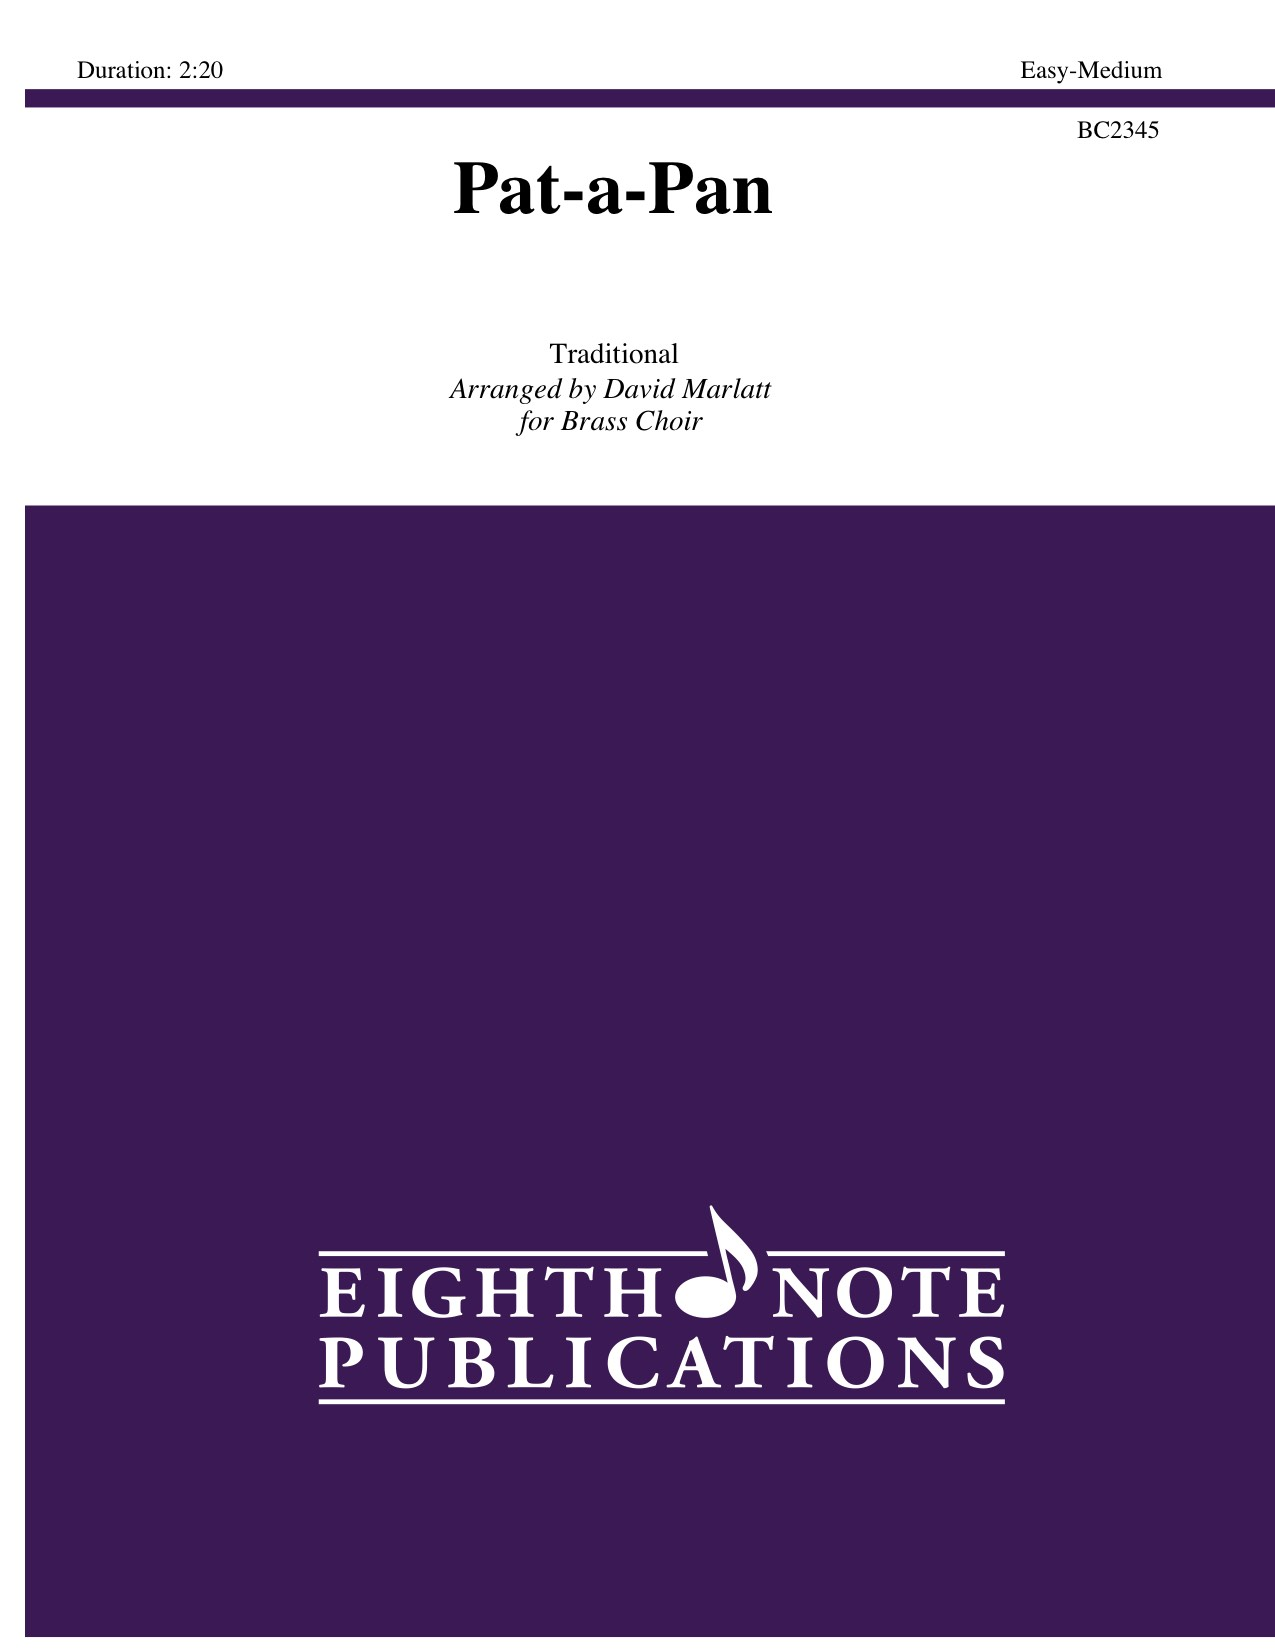 Eighth Note Publications - Pat-a-Pan